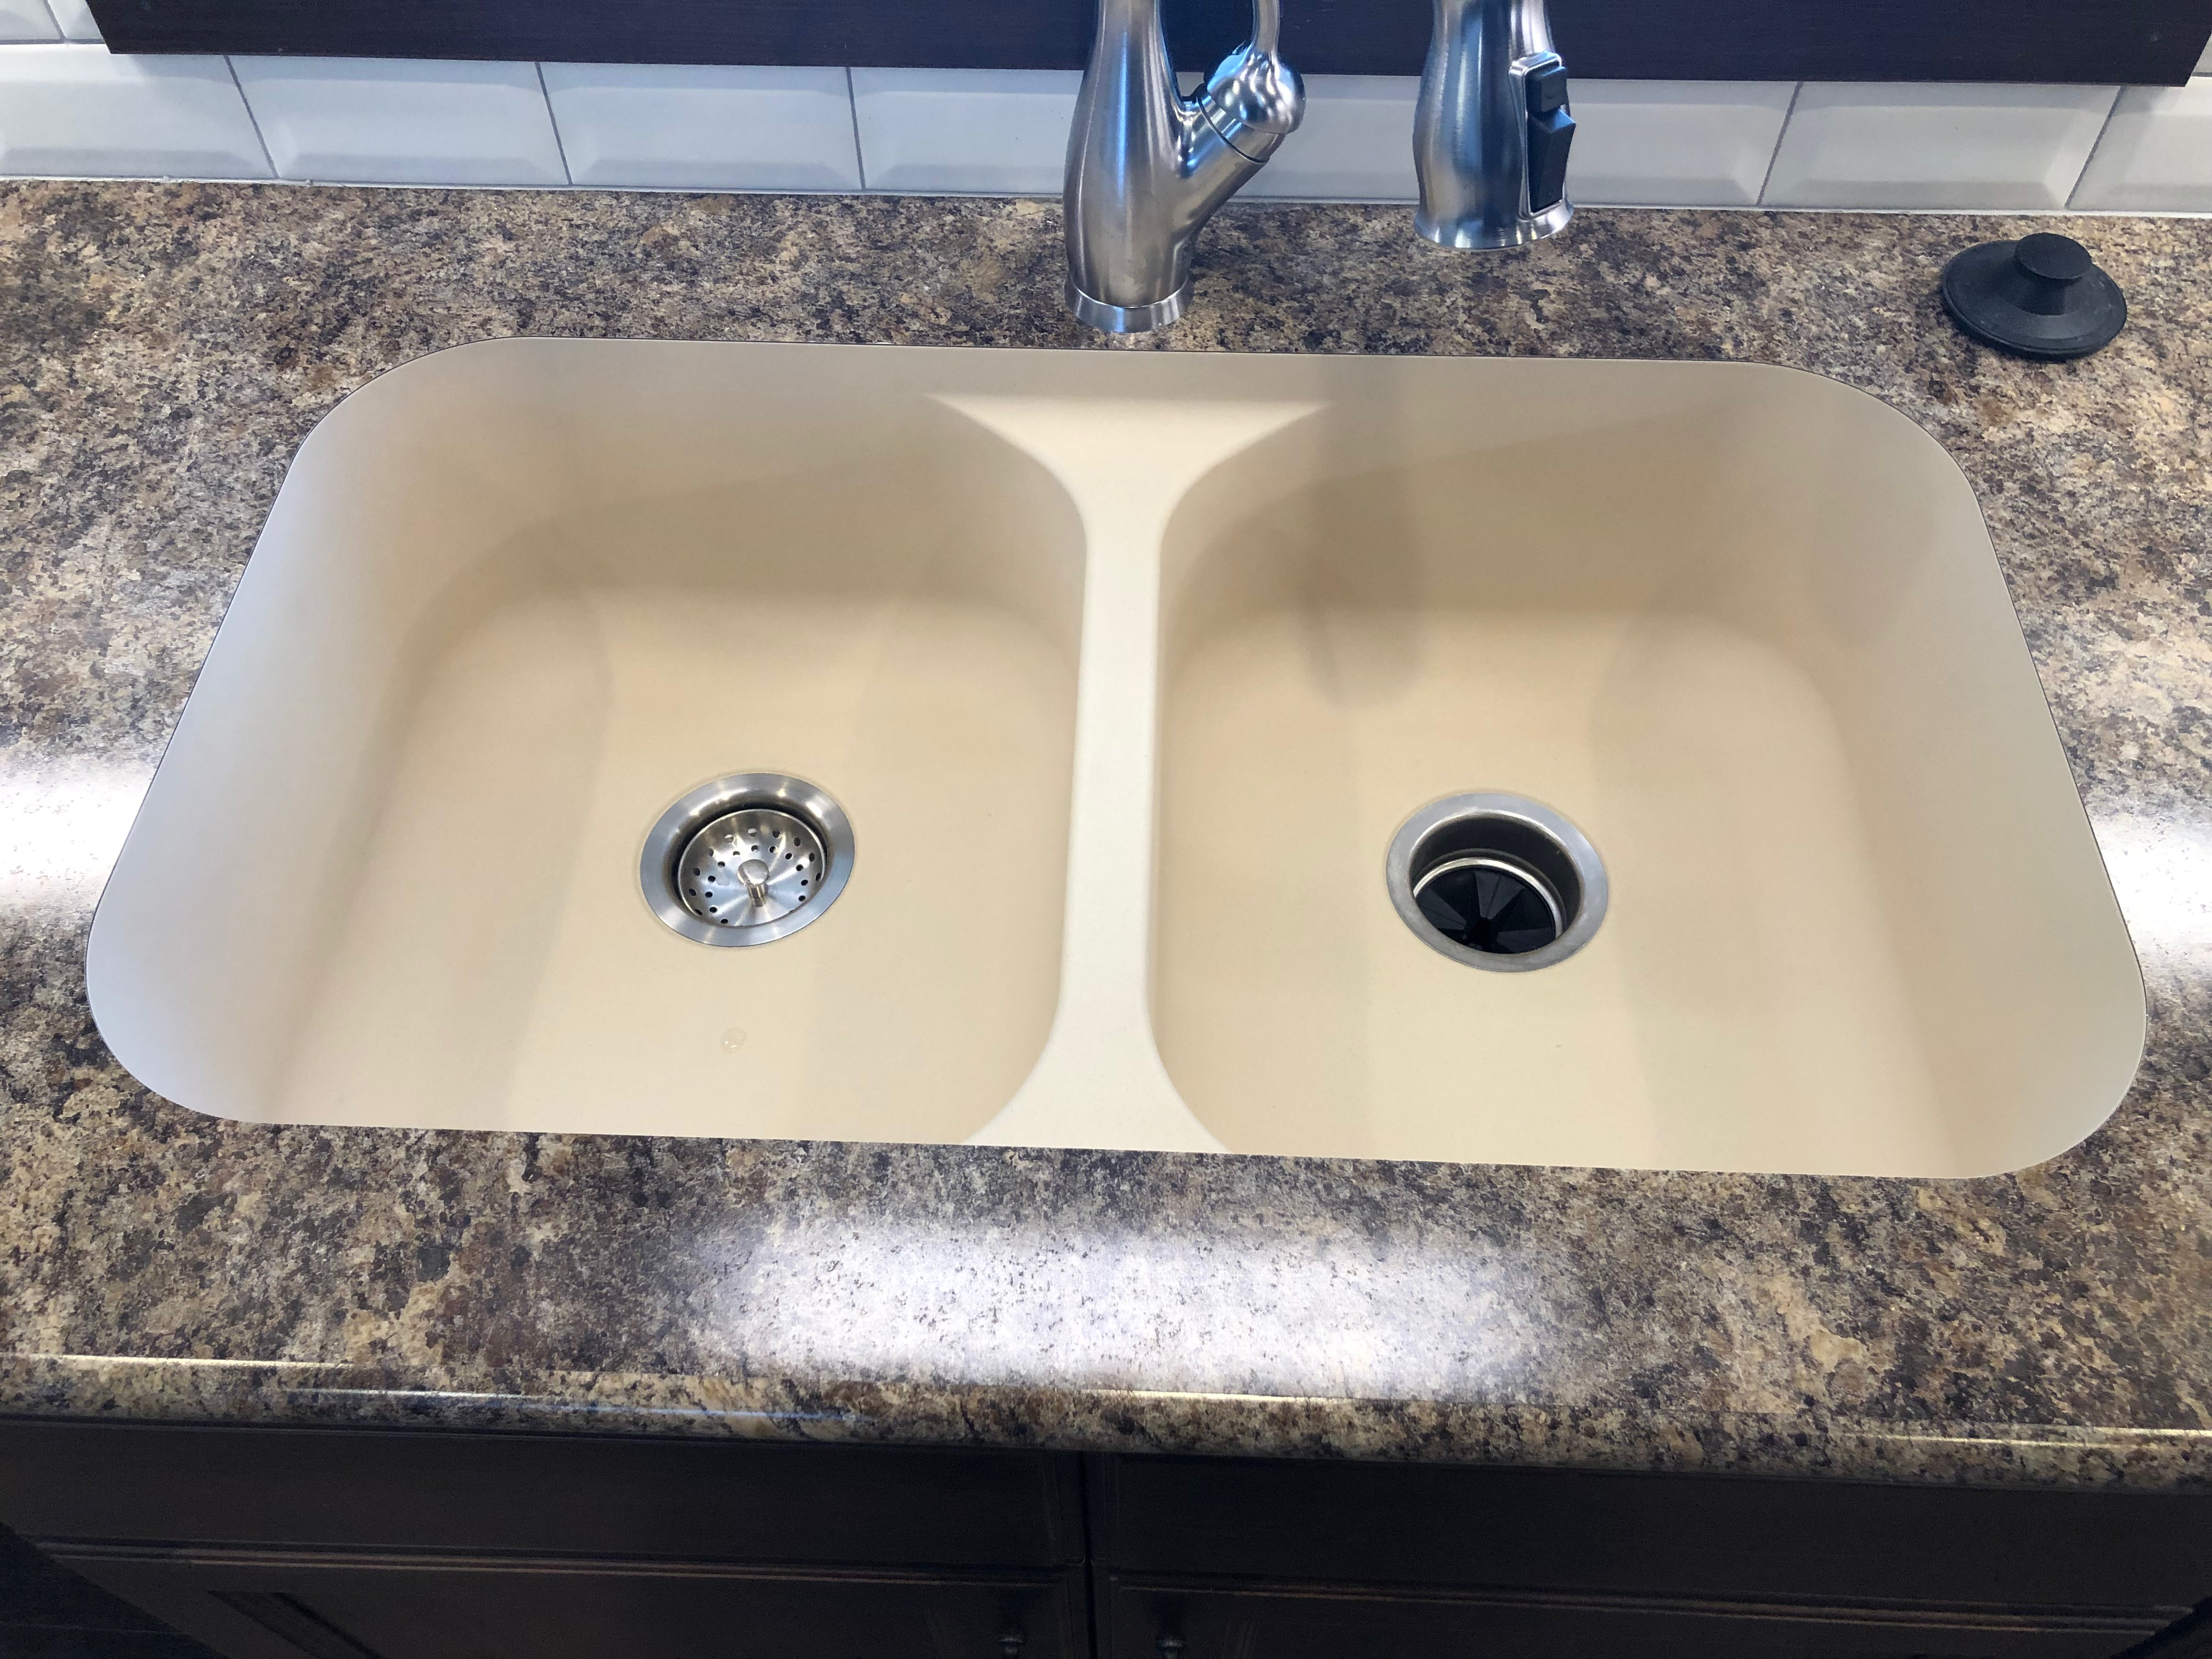 Laminate Countertop, undermount sink, bullnose edging